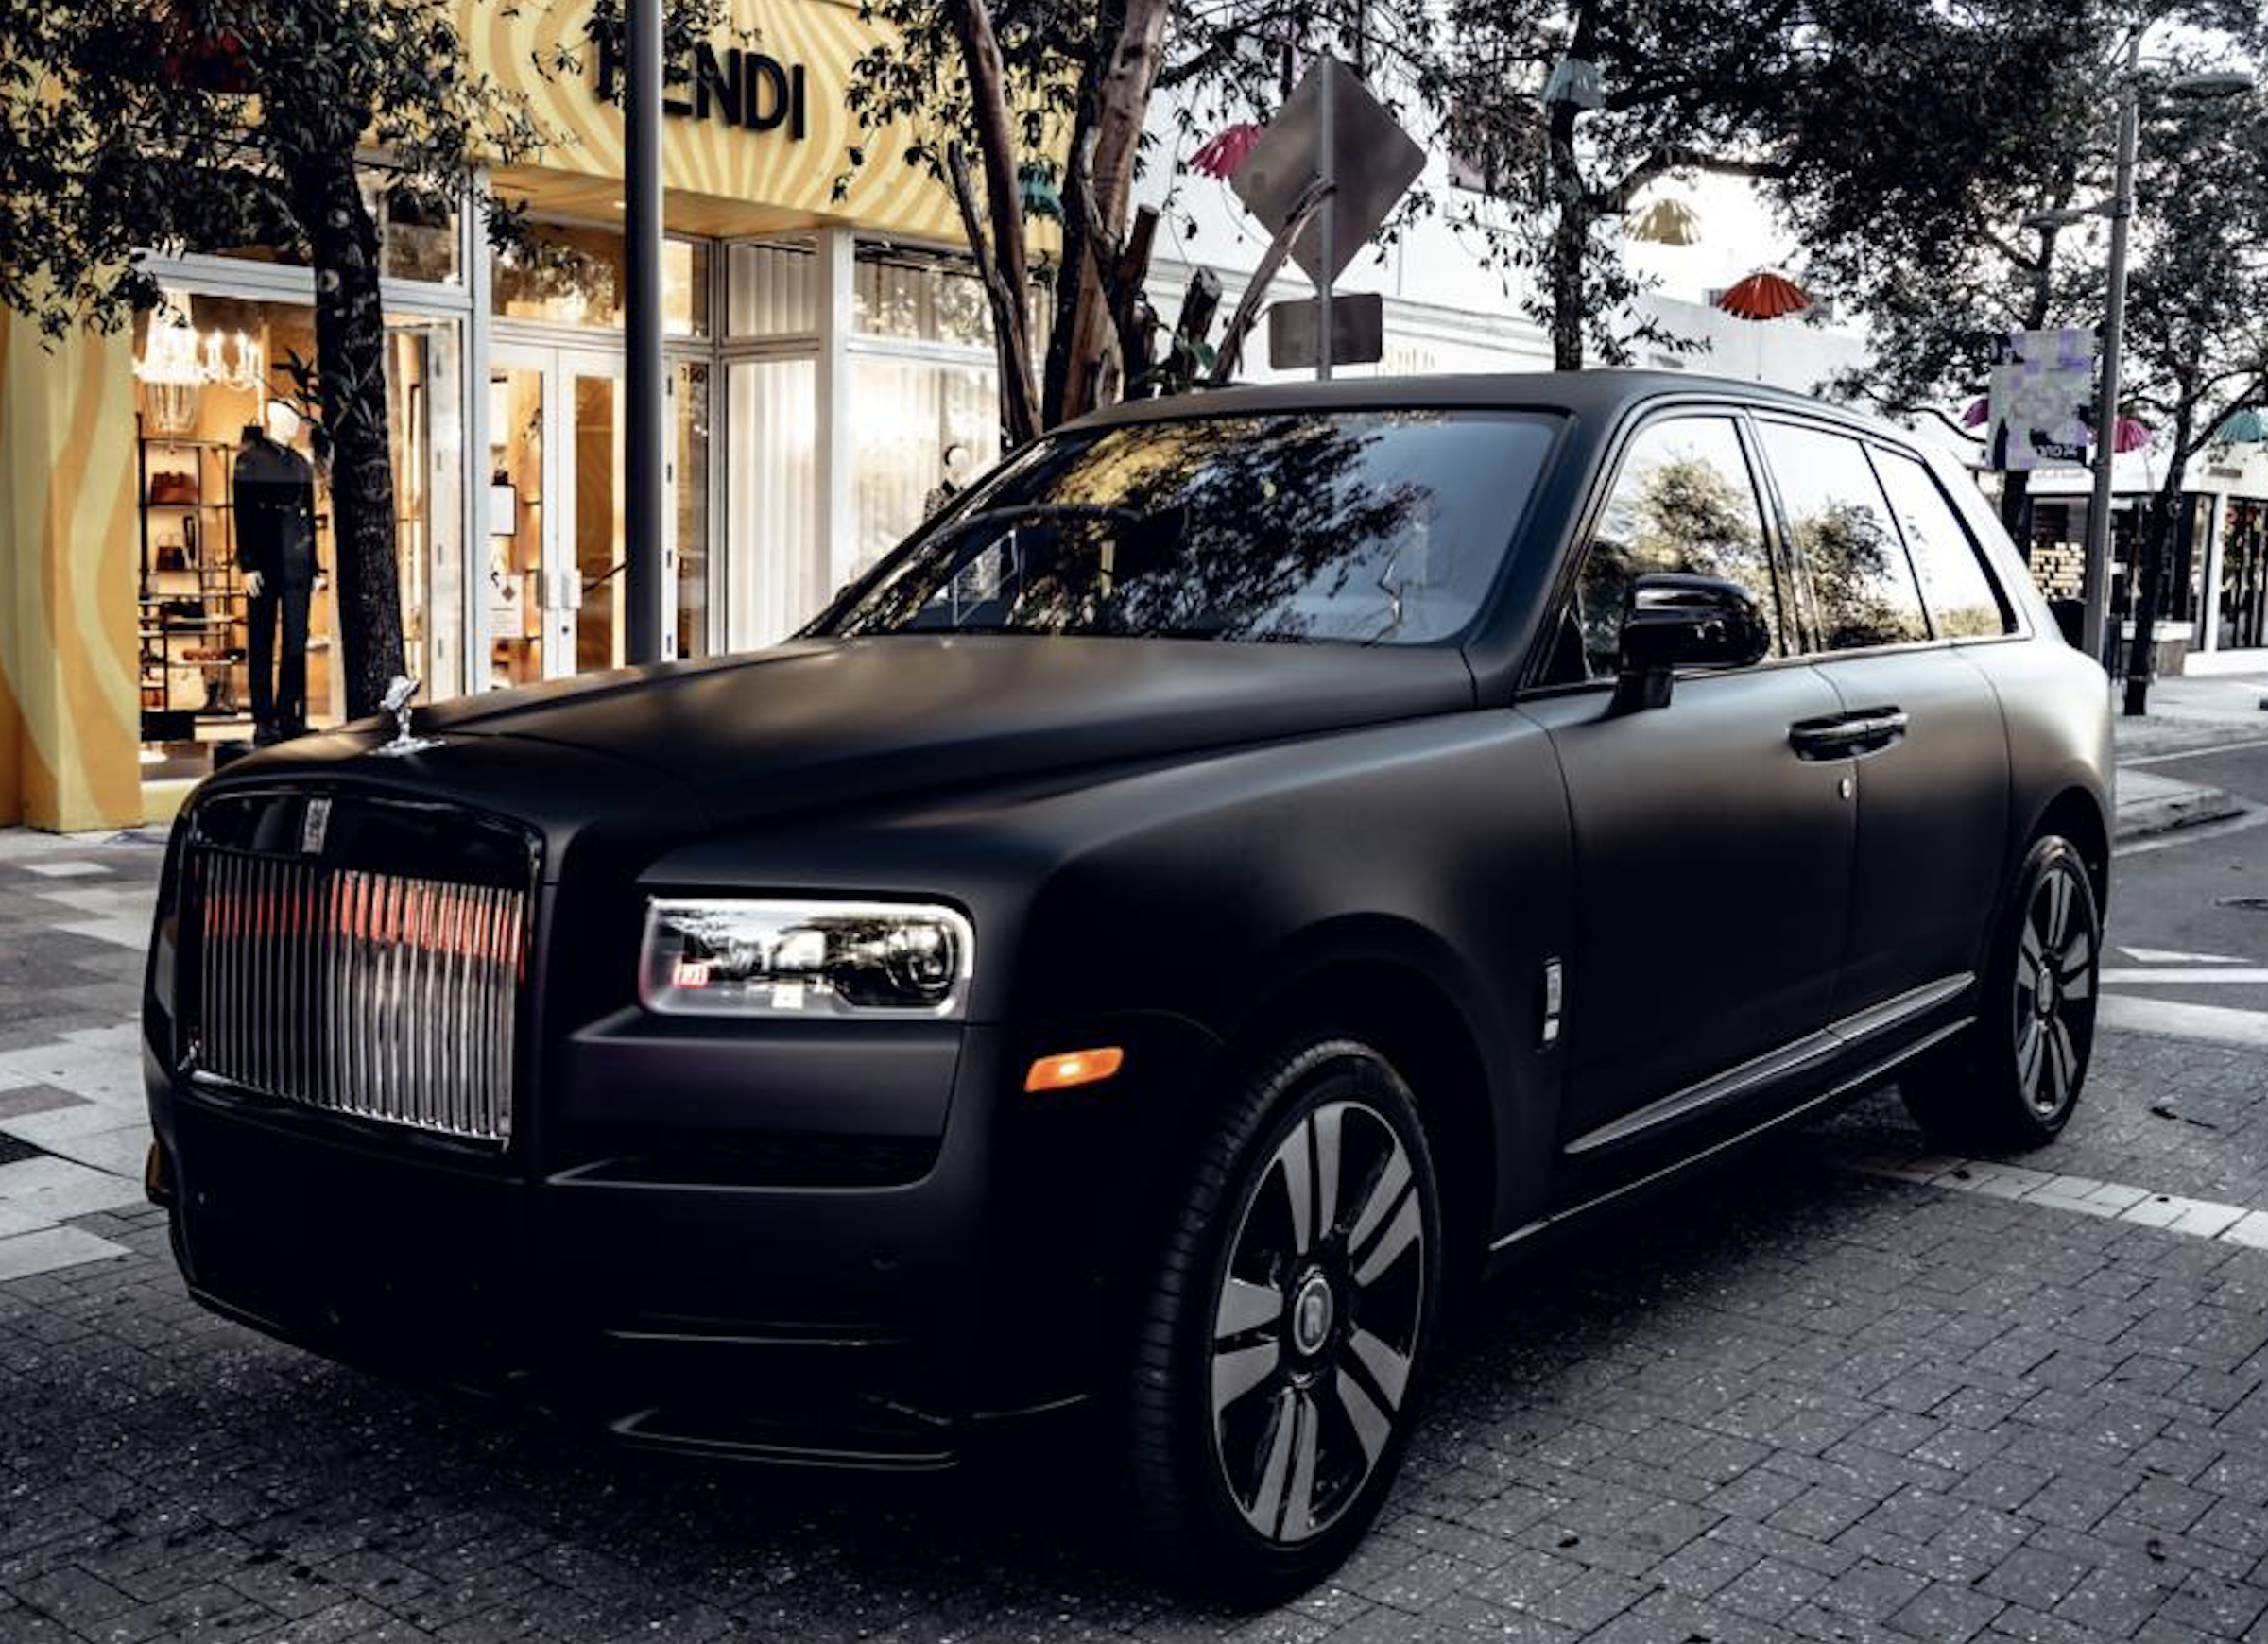 Image #8 of our  2021 ROLLS ROYCE CULLINAN - MATT BLACK    In Miami Fort Lauderdale Palm Beach South Florida